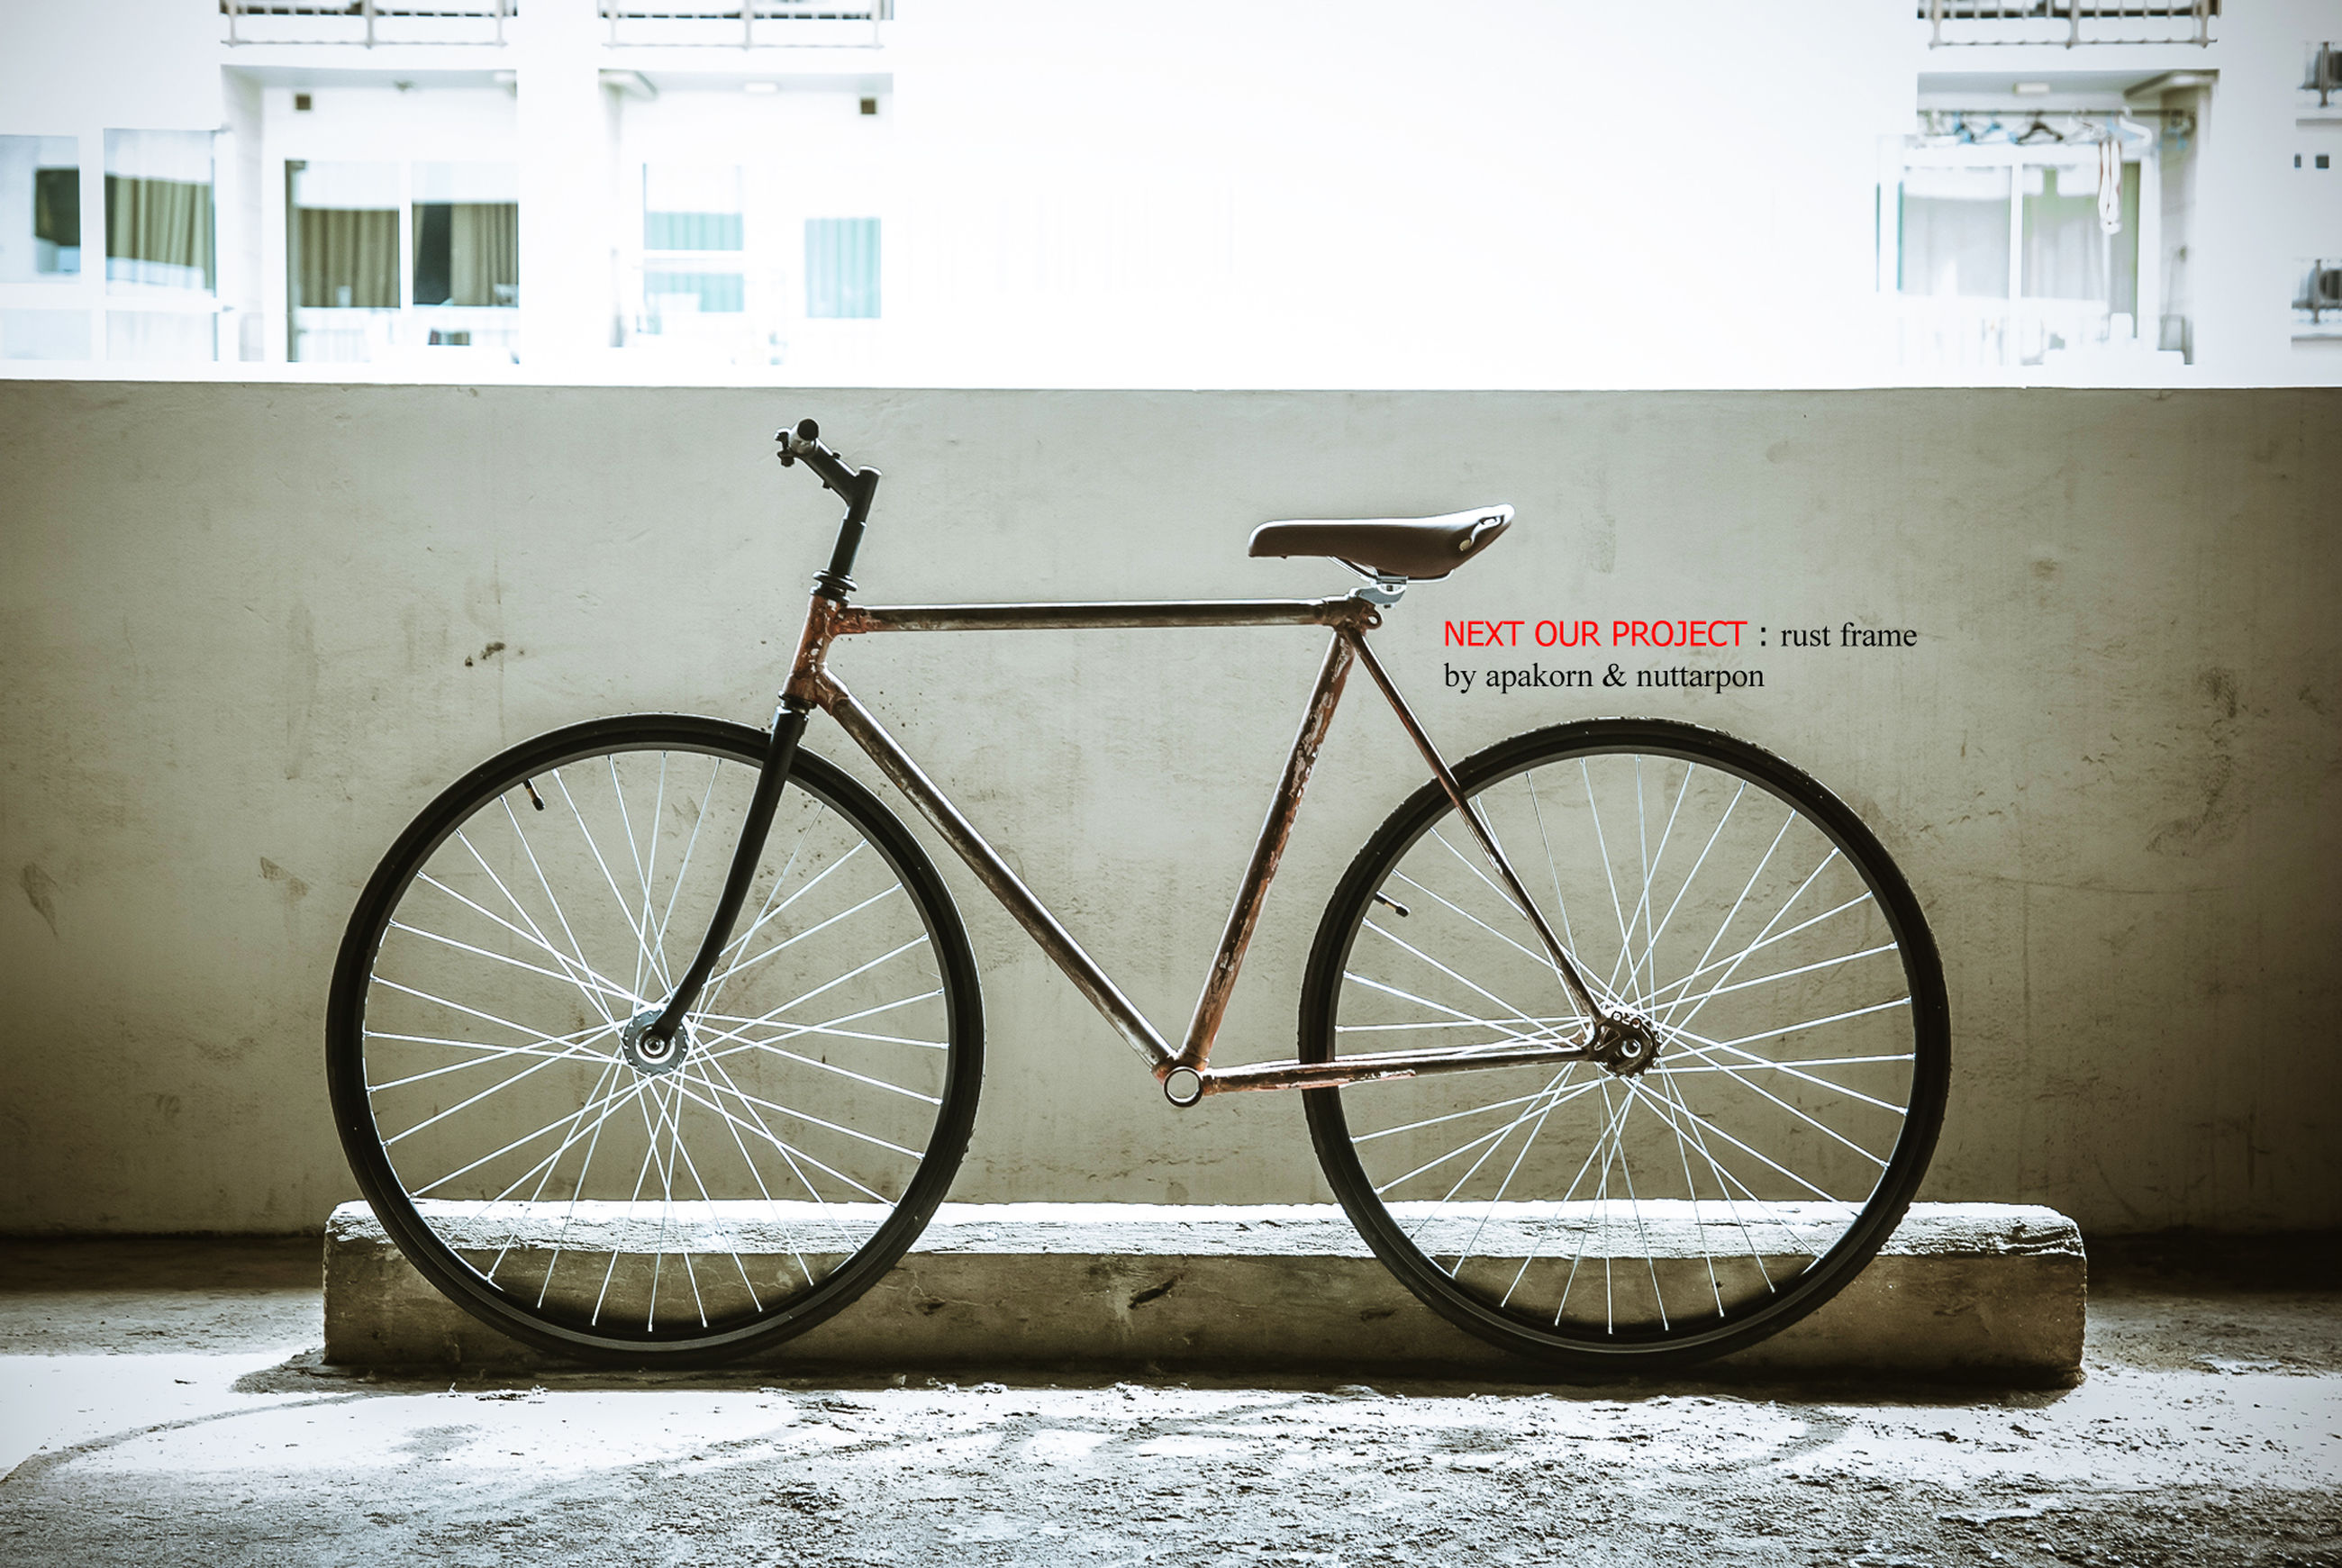 bicycle, building exterior, architecture, built structure, stationary, mode of transport, wall - building feature, parking, land vehicle, transportation, parked, house, window, wall, day, no people, outdoors, residential structure, building, wheel